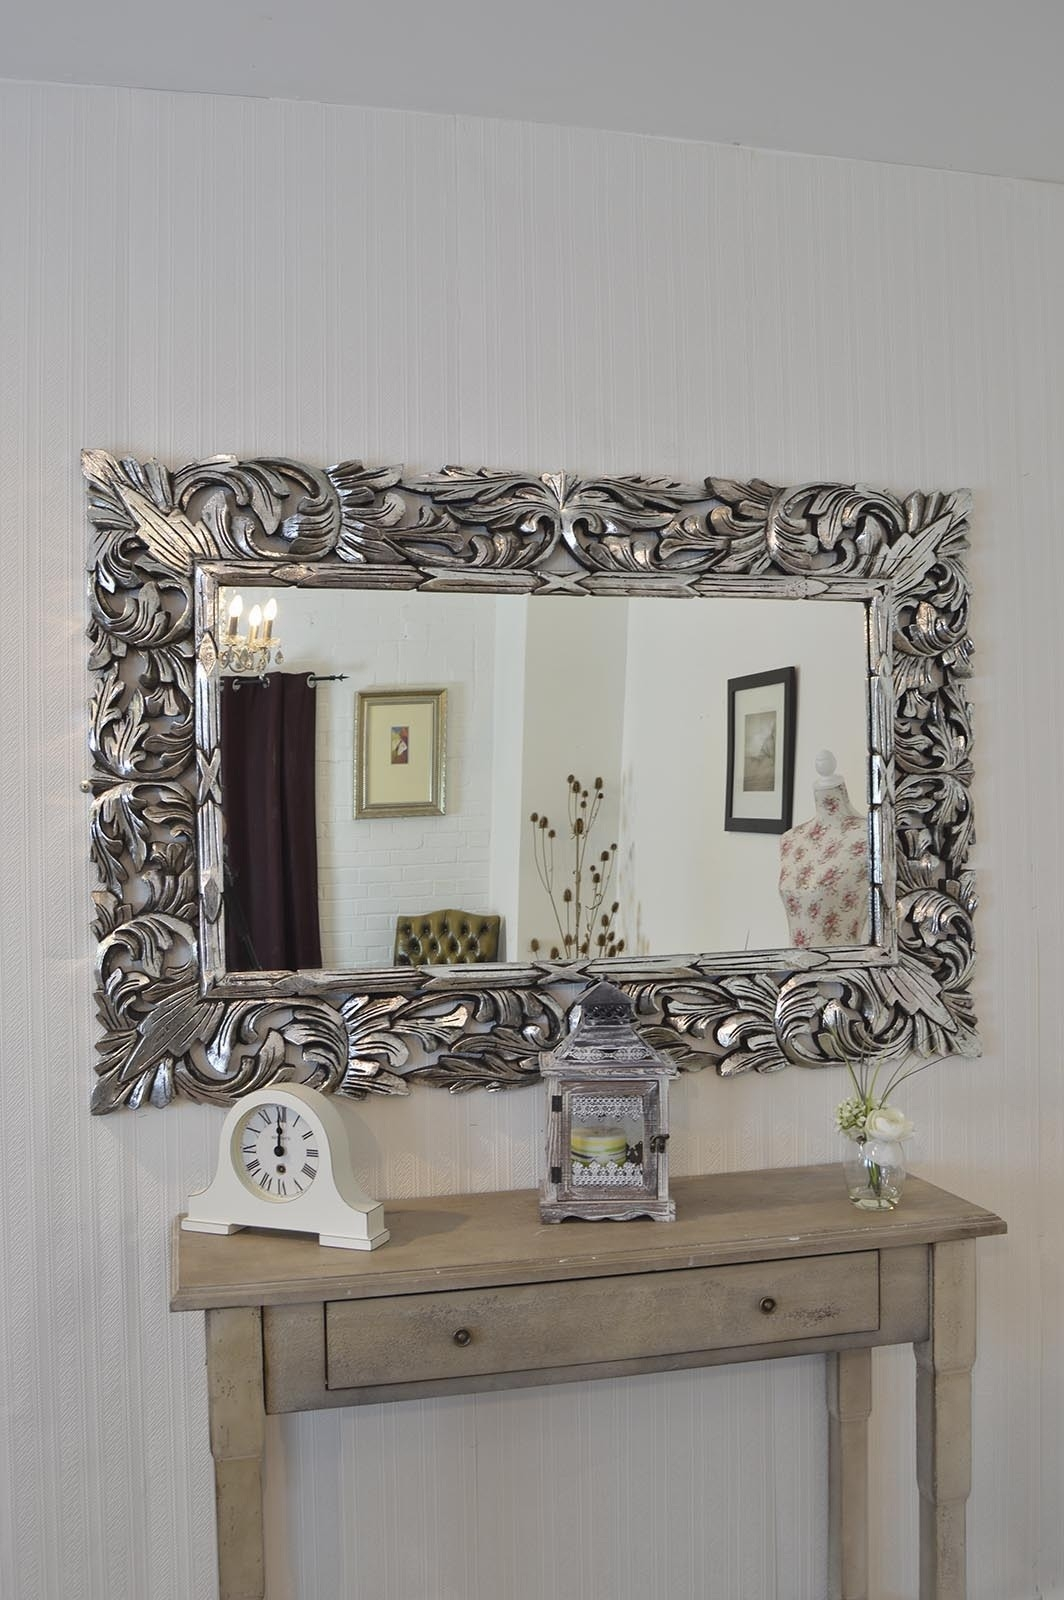 4ft11 X 3ft4 Large Silver Carved Ornate Wall Mounted Mirror Wood Regarding Very Large Ornate Mirrors (Image 2 of 15)